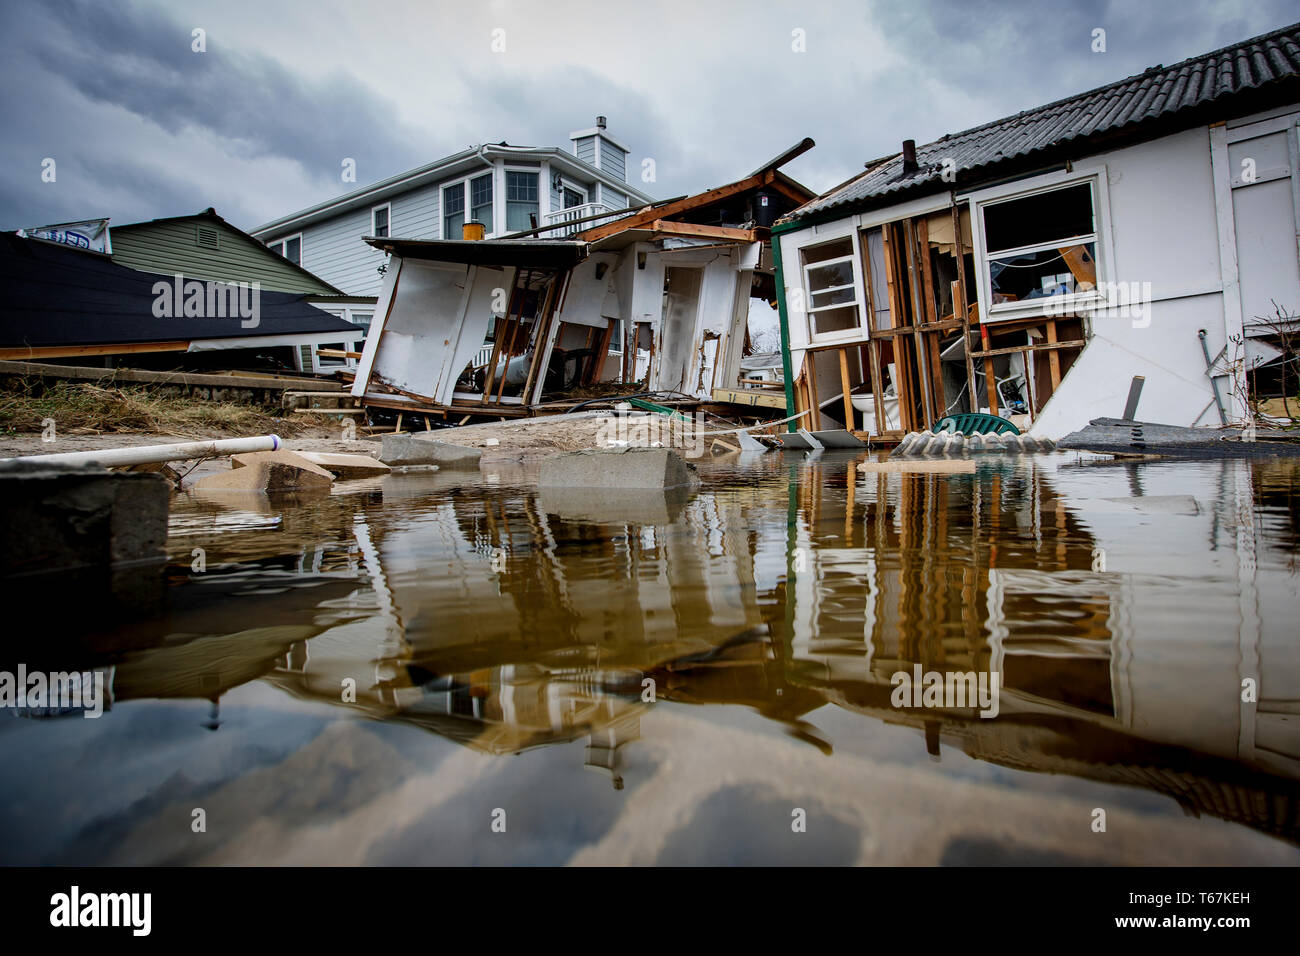 The Rockaways were especially hard hit by the Hurricane Sandy, with storm surge, hurricane winds and uncontrollable fires devastating the beach community. - Stock Image